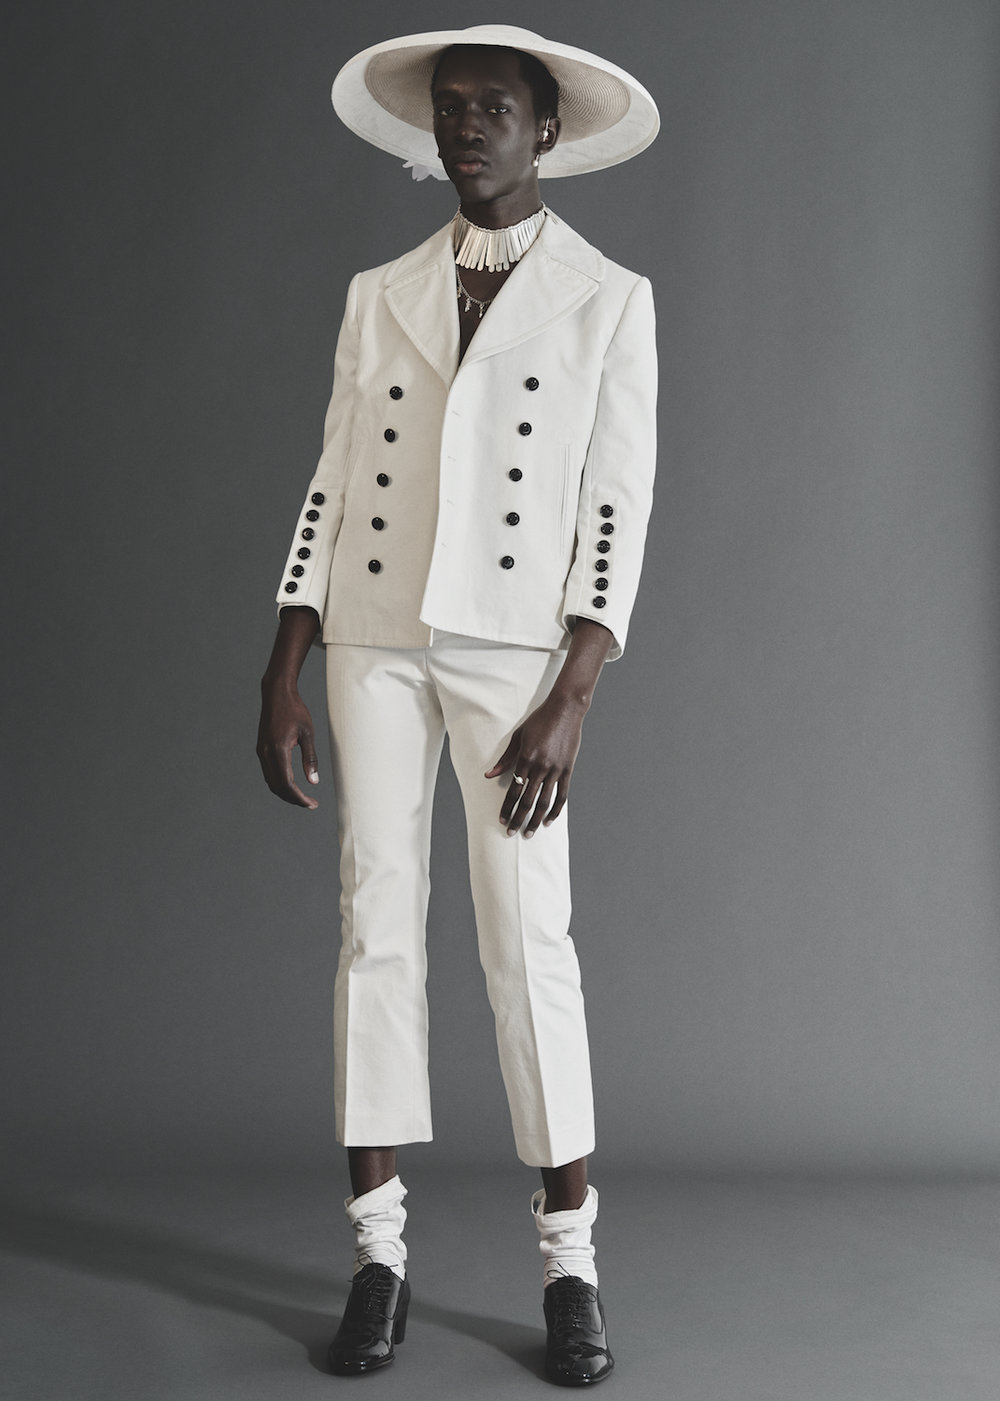 Wilson Oryema for Hunger Magazine, shot by Alastair Strong.